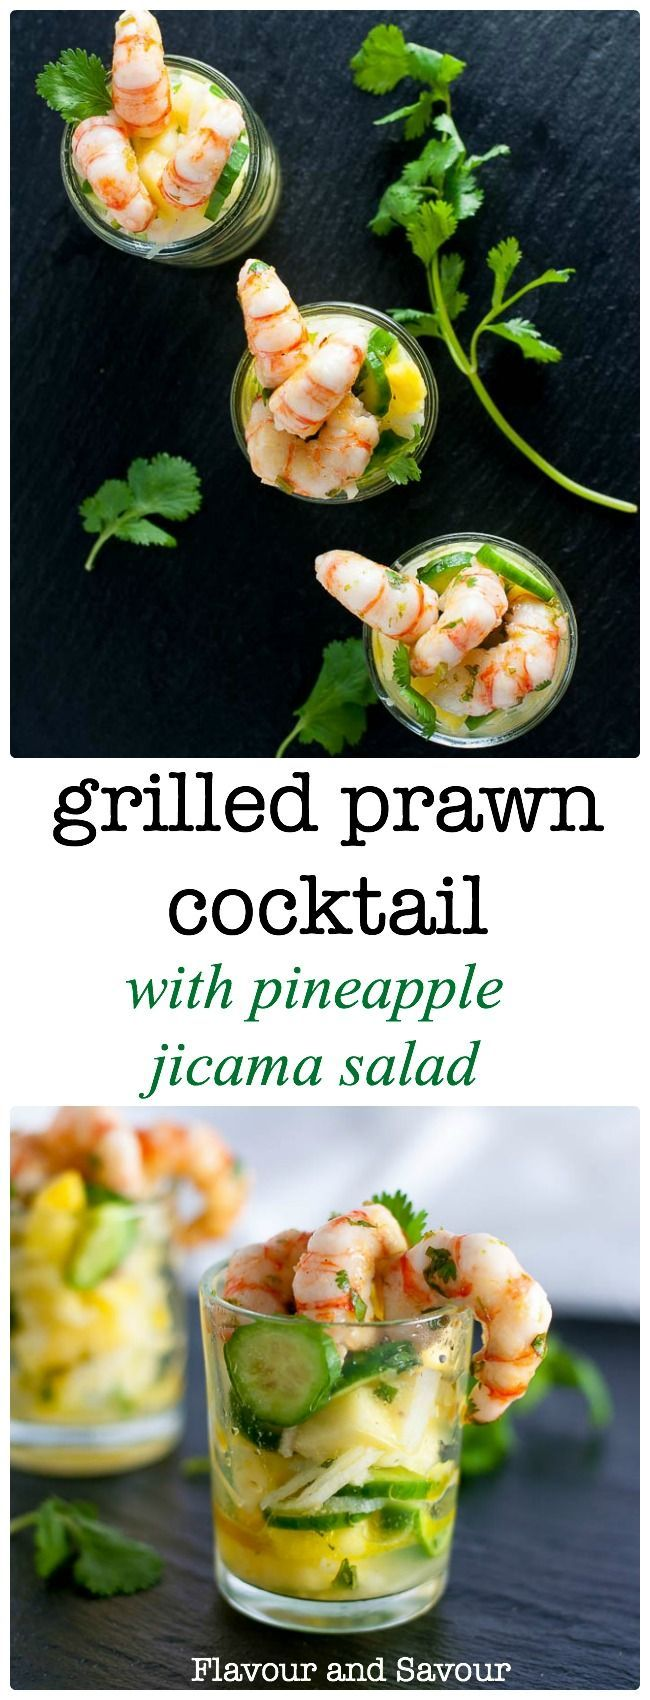 This Grilled Prawn Cocktail with Pineapple Jicama Salad combines juicy pineapple, crisp cucumber and jicama with a tangy cilantro lime dressing. Top with fresh grilled prawns or shrimp for a spectacular mini appetizer. via /enessman/